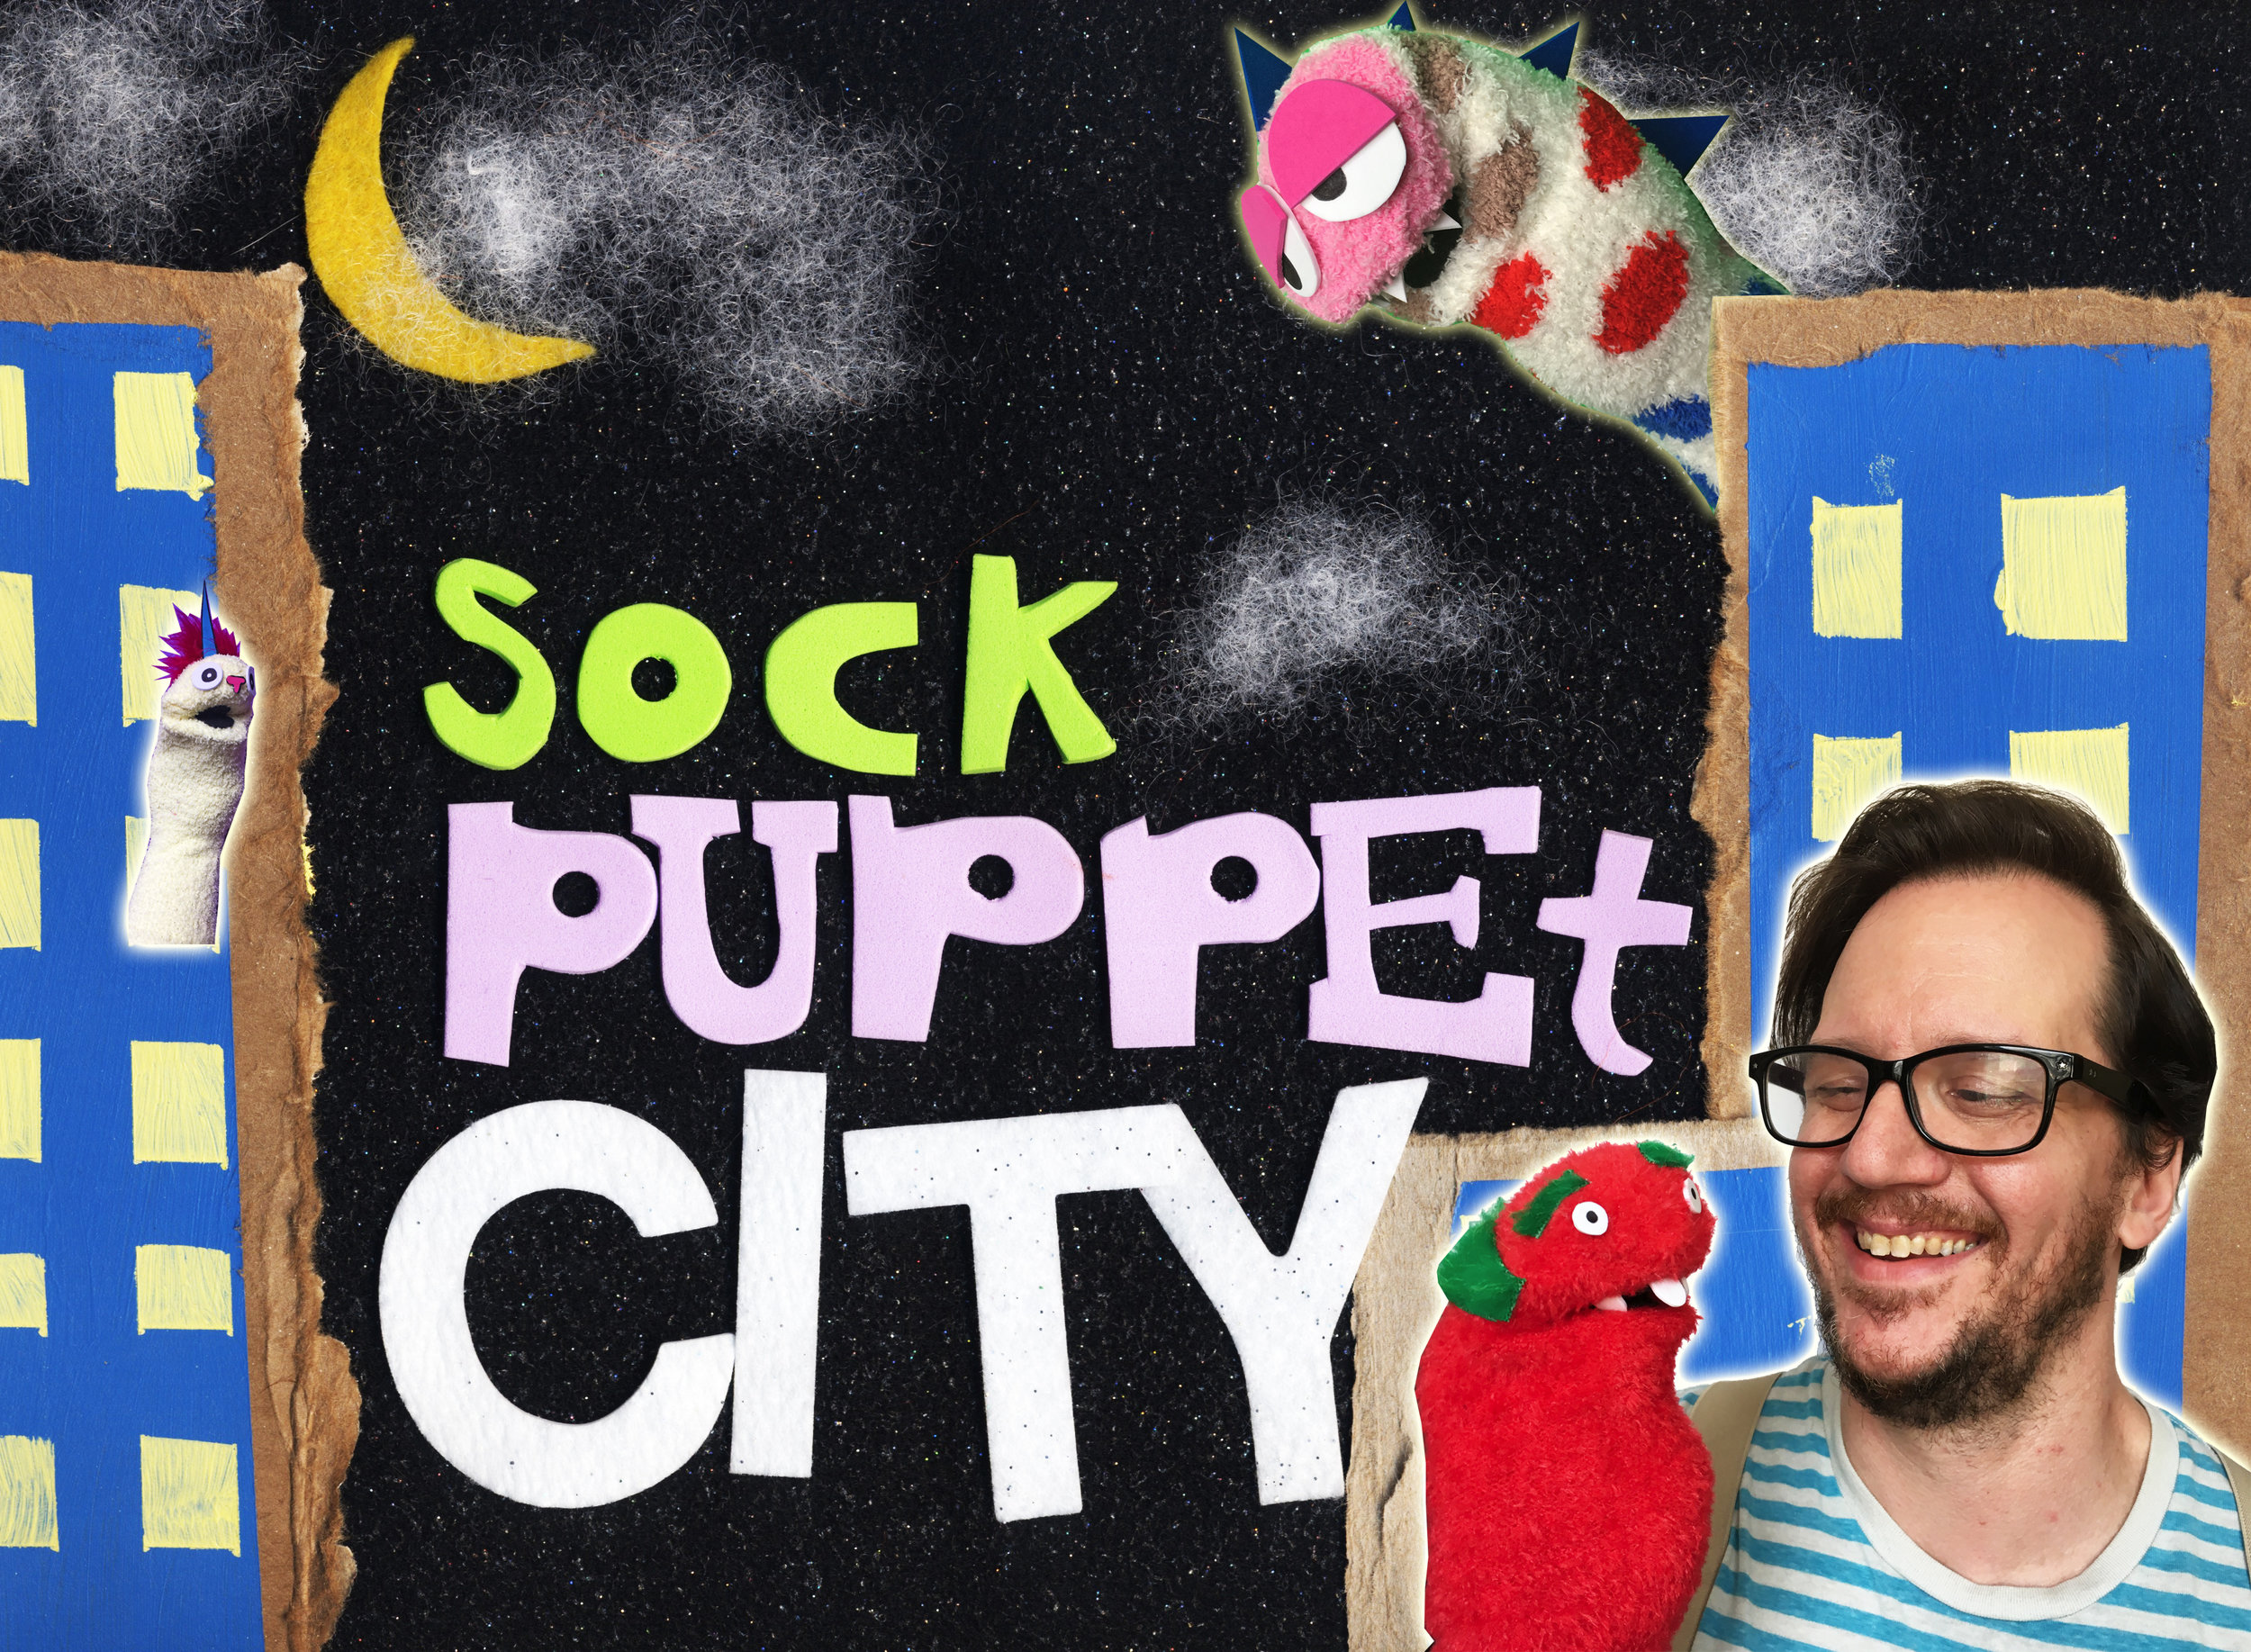 SockPuppetCity_with_me3.jpg